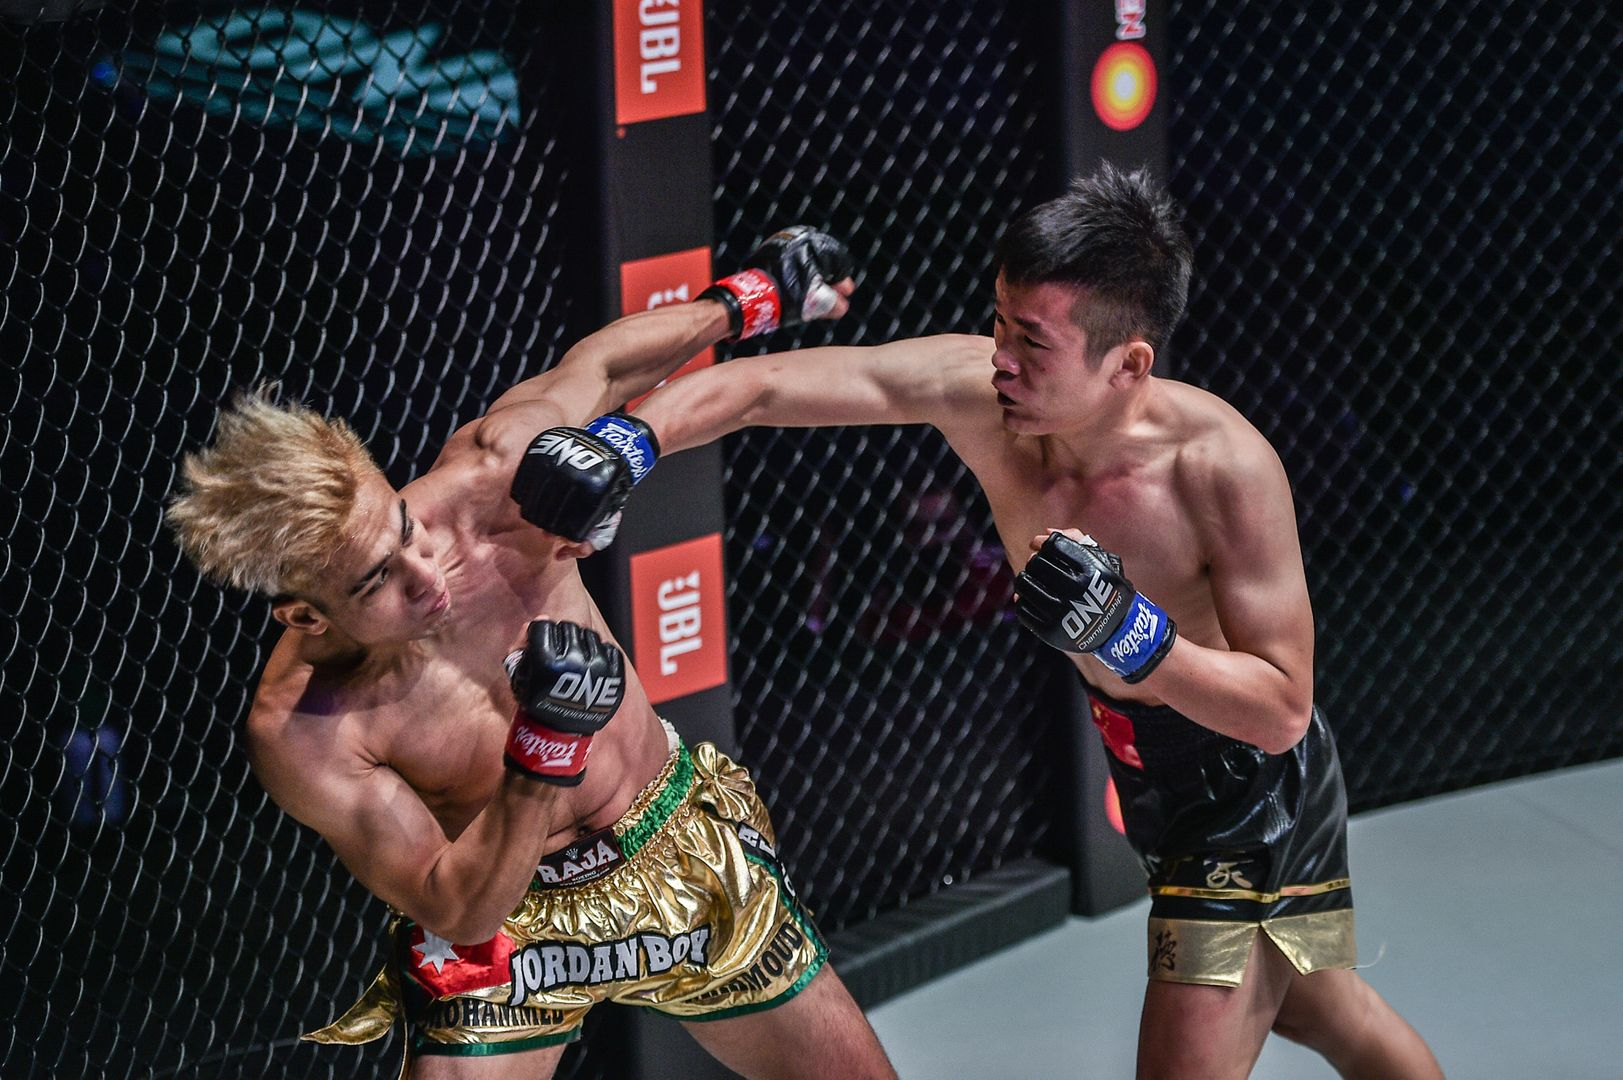 Bantamweight Muay Thai stars Mohammed Bin Mahmoud and Han Zi Hao fight at ONE: REIGN OF DYNASTIES II